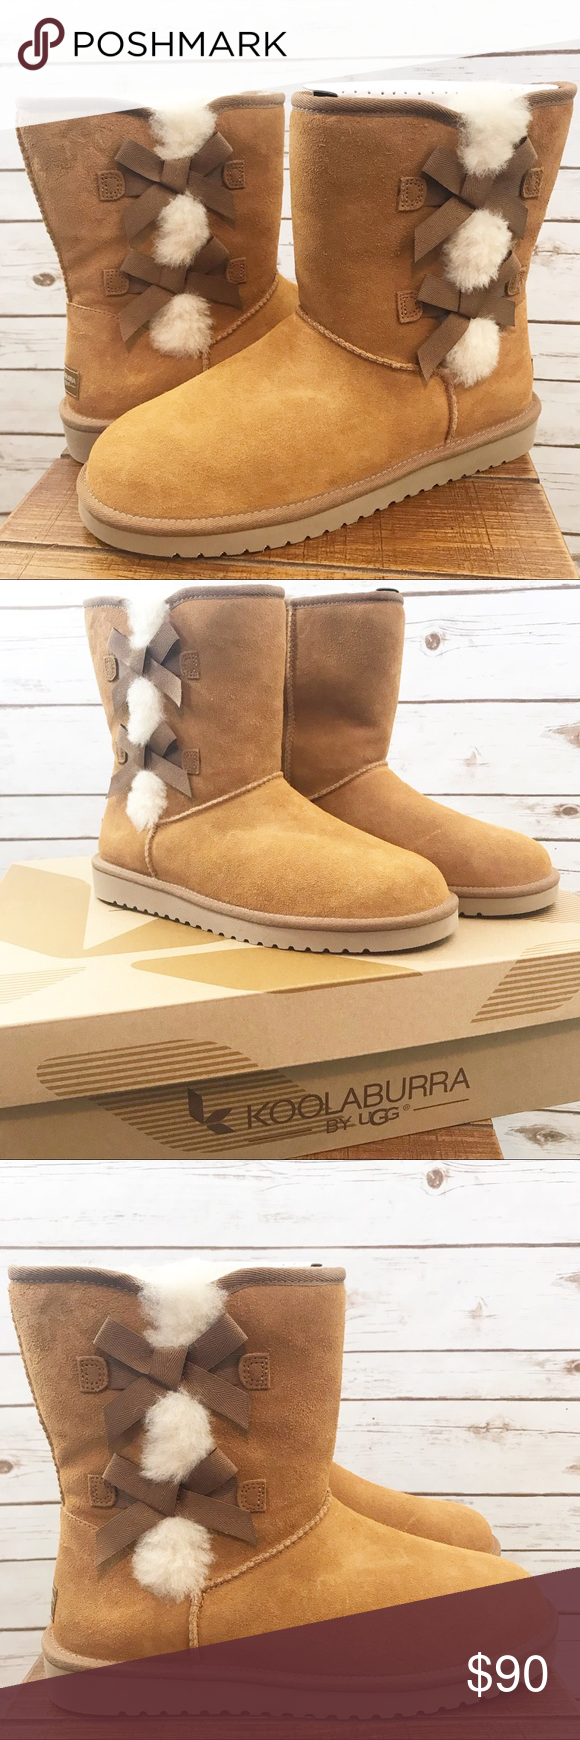 1b30ea6e914 Kookaburra by UGG Size 11 Chestnut Victoria Boots New with the box ...